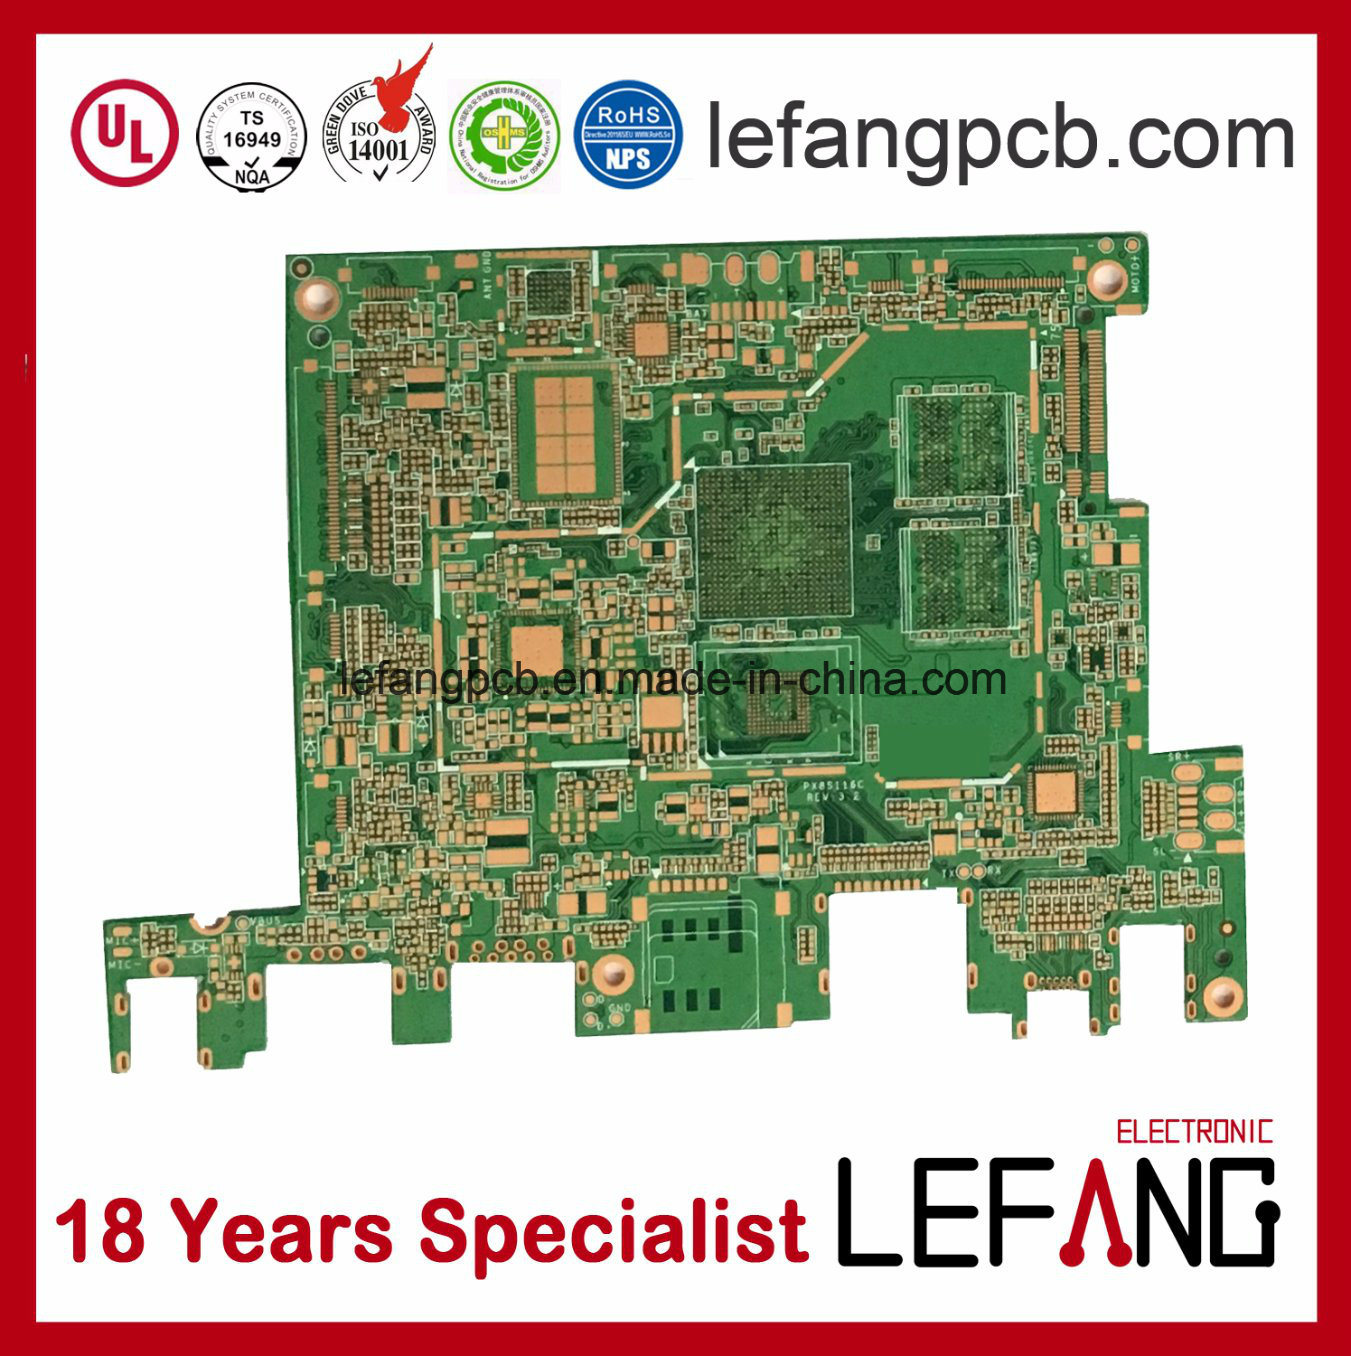 China Multilayer 10mm 6l Osp V0 Medical Devices Pcb Circuit Board Images Printed Pcba